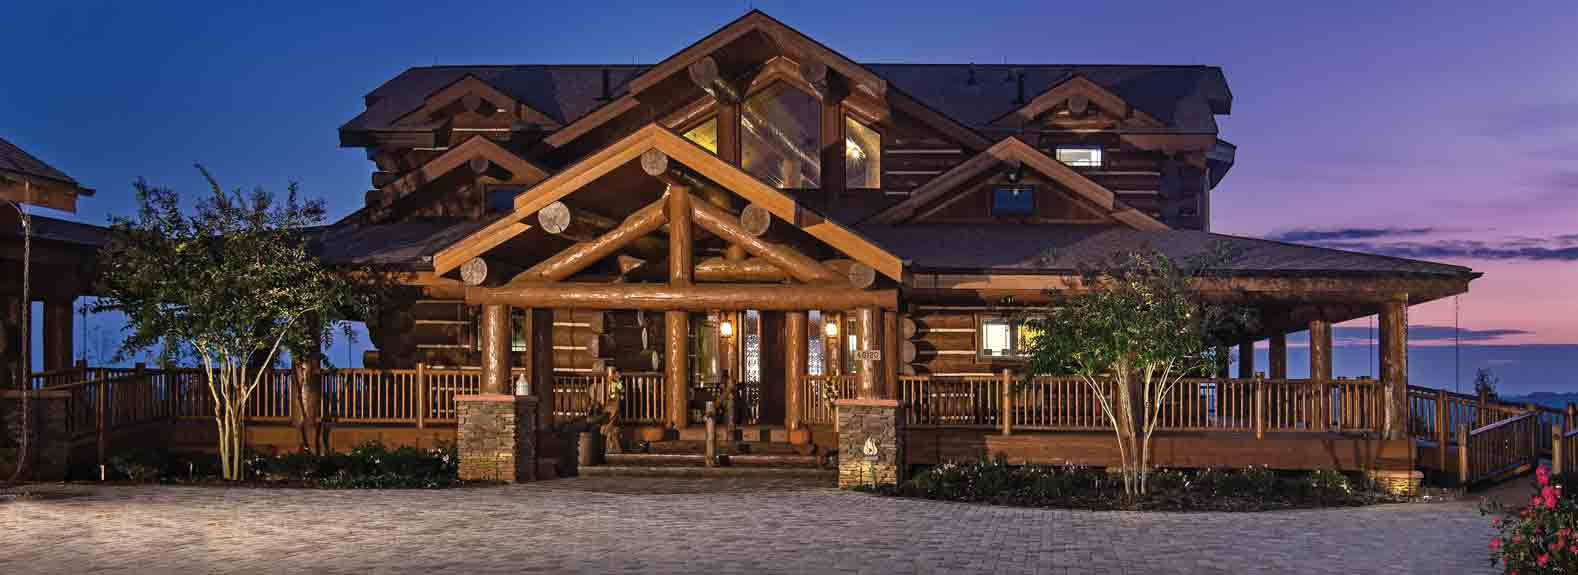 PrecisionCraft Log Homes | Authentic Handcrafted and Milled